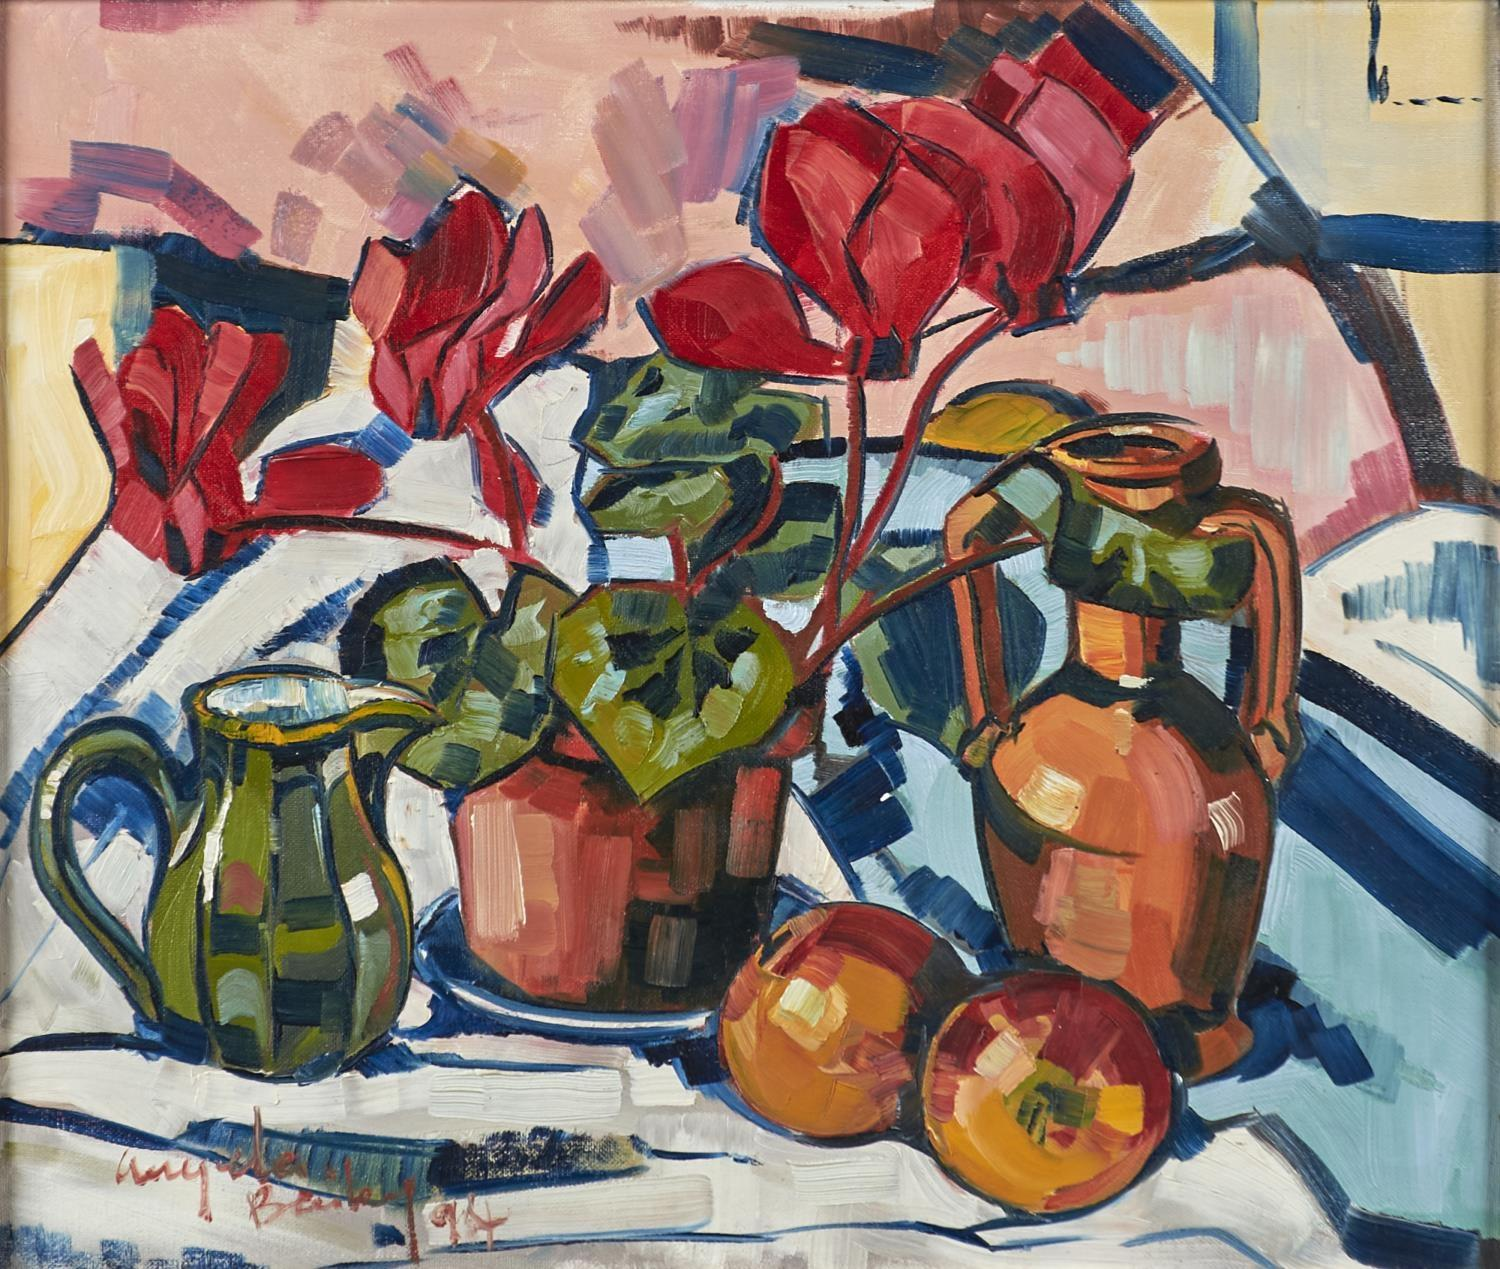 ANGELA BAILEY, 20TH/21ST CENTURY - STILL LIFE WITH CYCLAMEN AND FRUIT, SIGNED AND DATED '94,